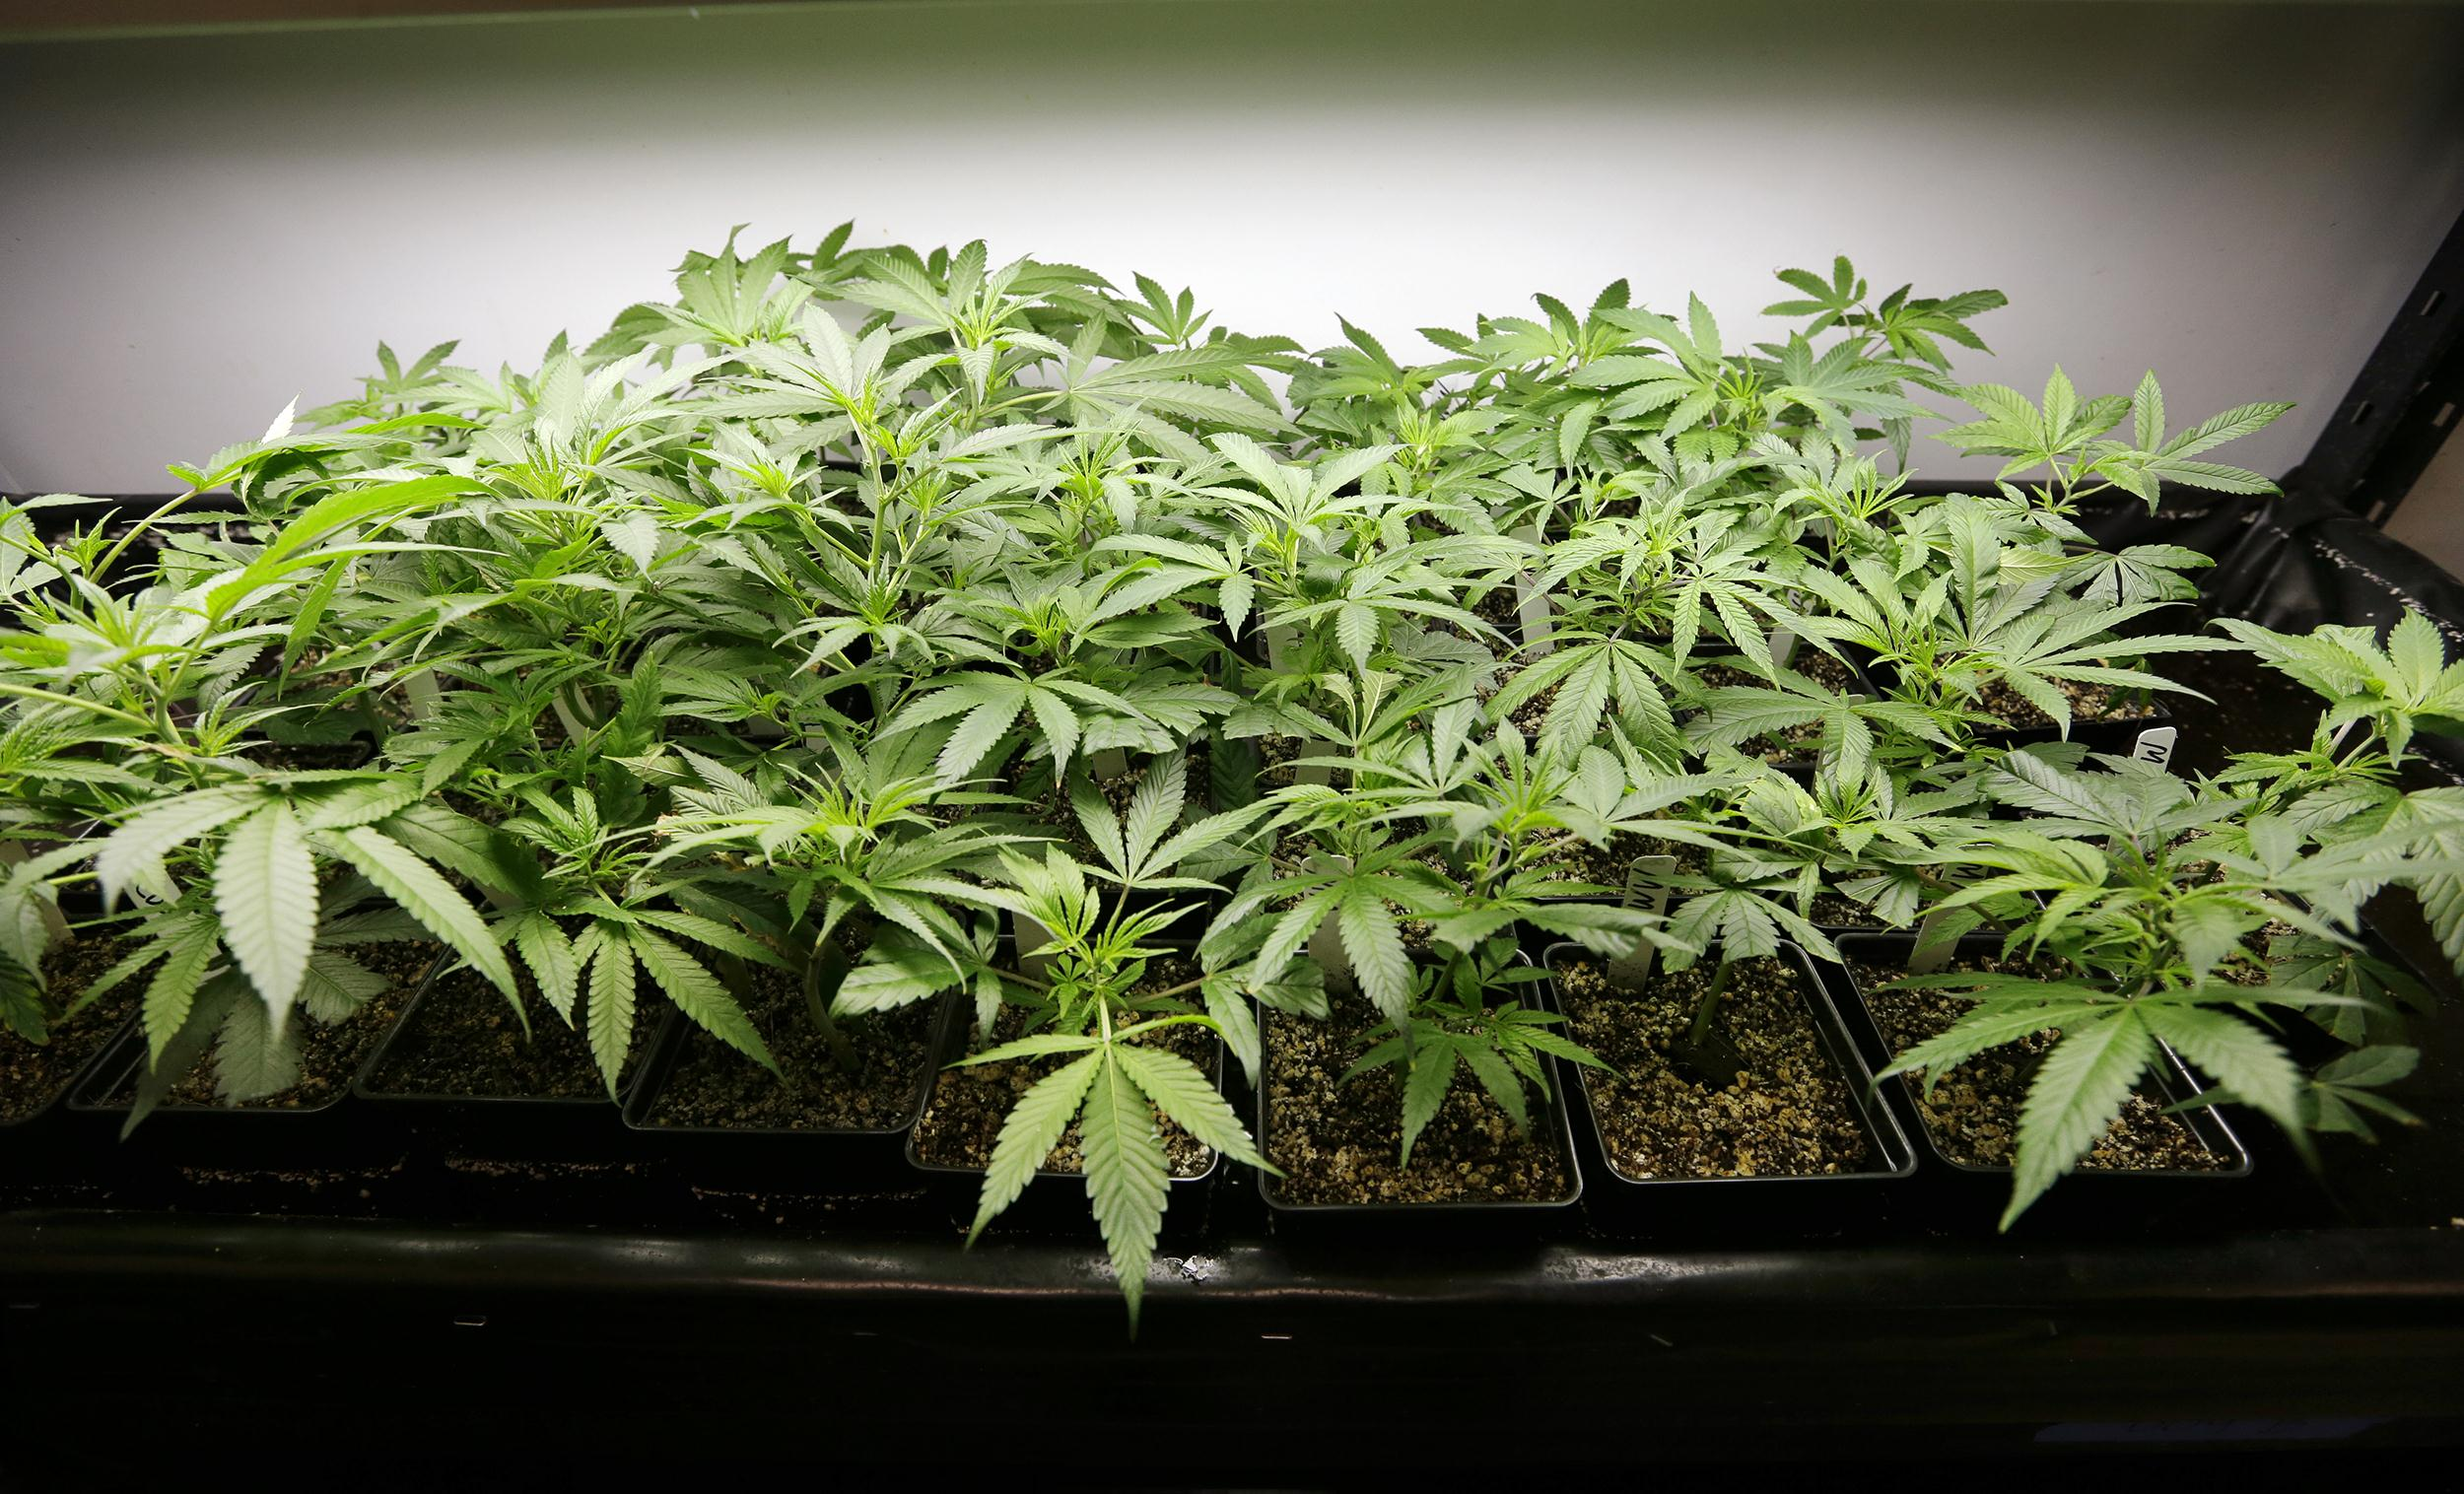 Image: One- to two-week-old marijuana starts sit under lights at a growing facility.